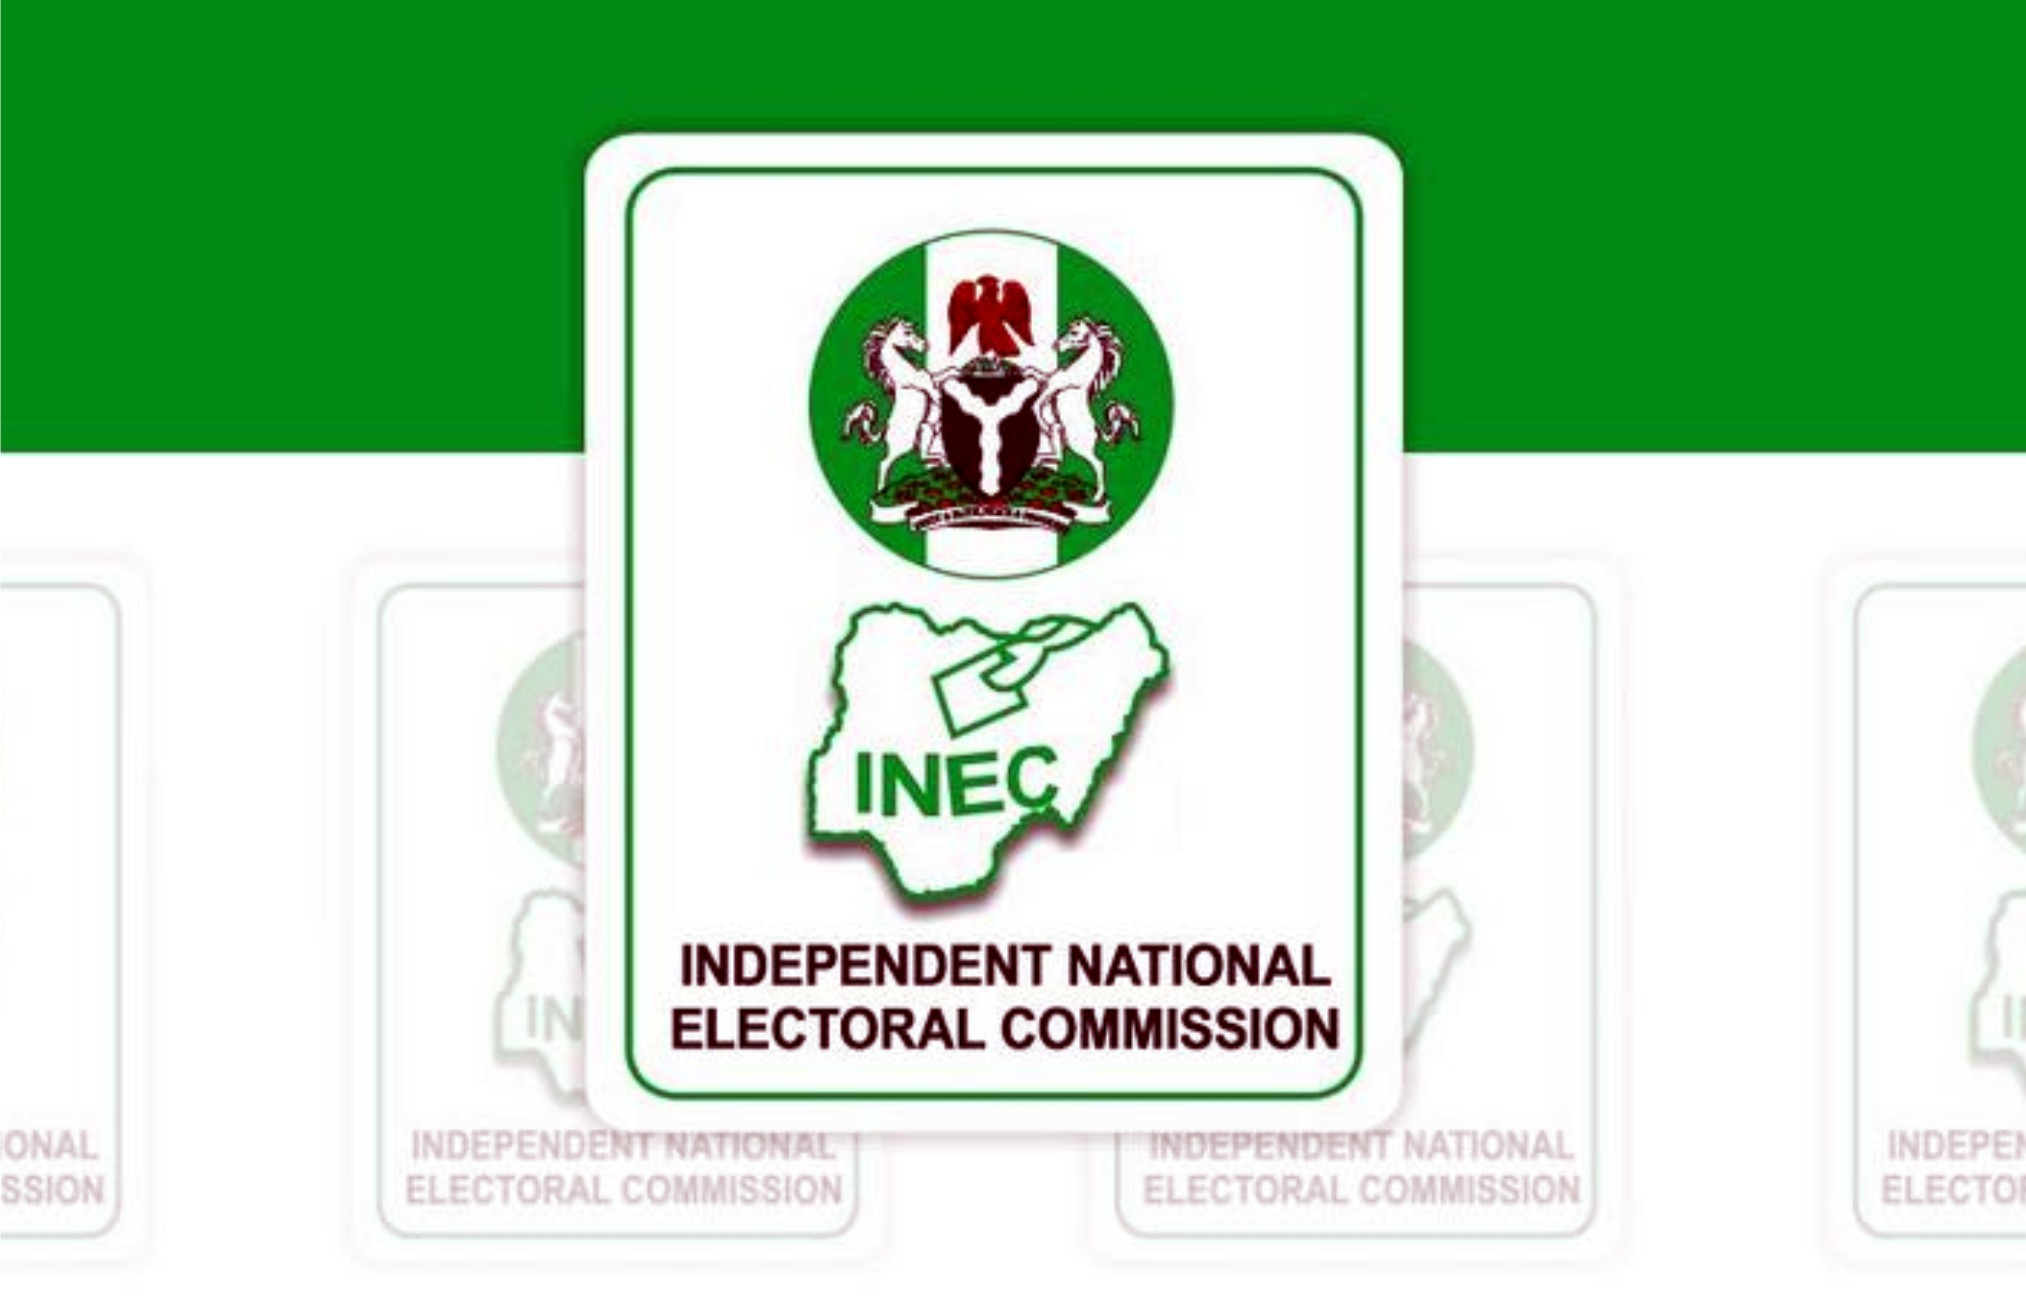 Functions of INEC and other Details